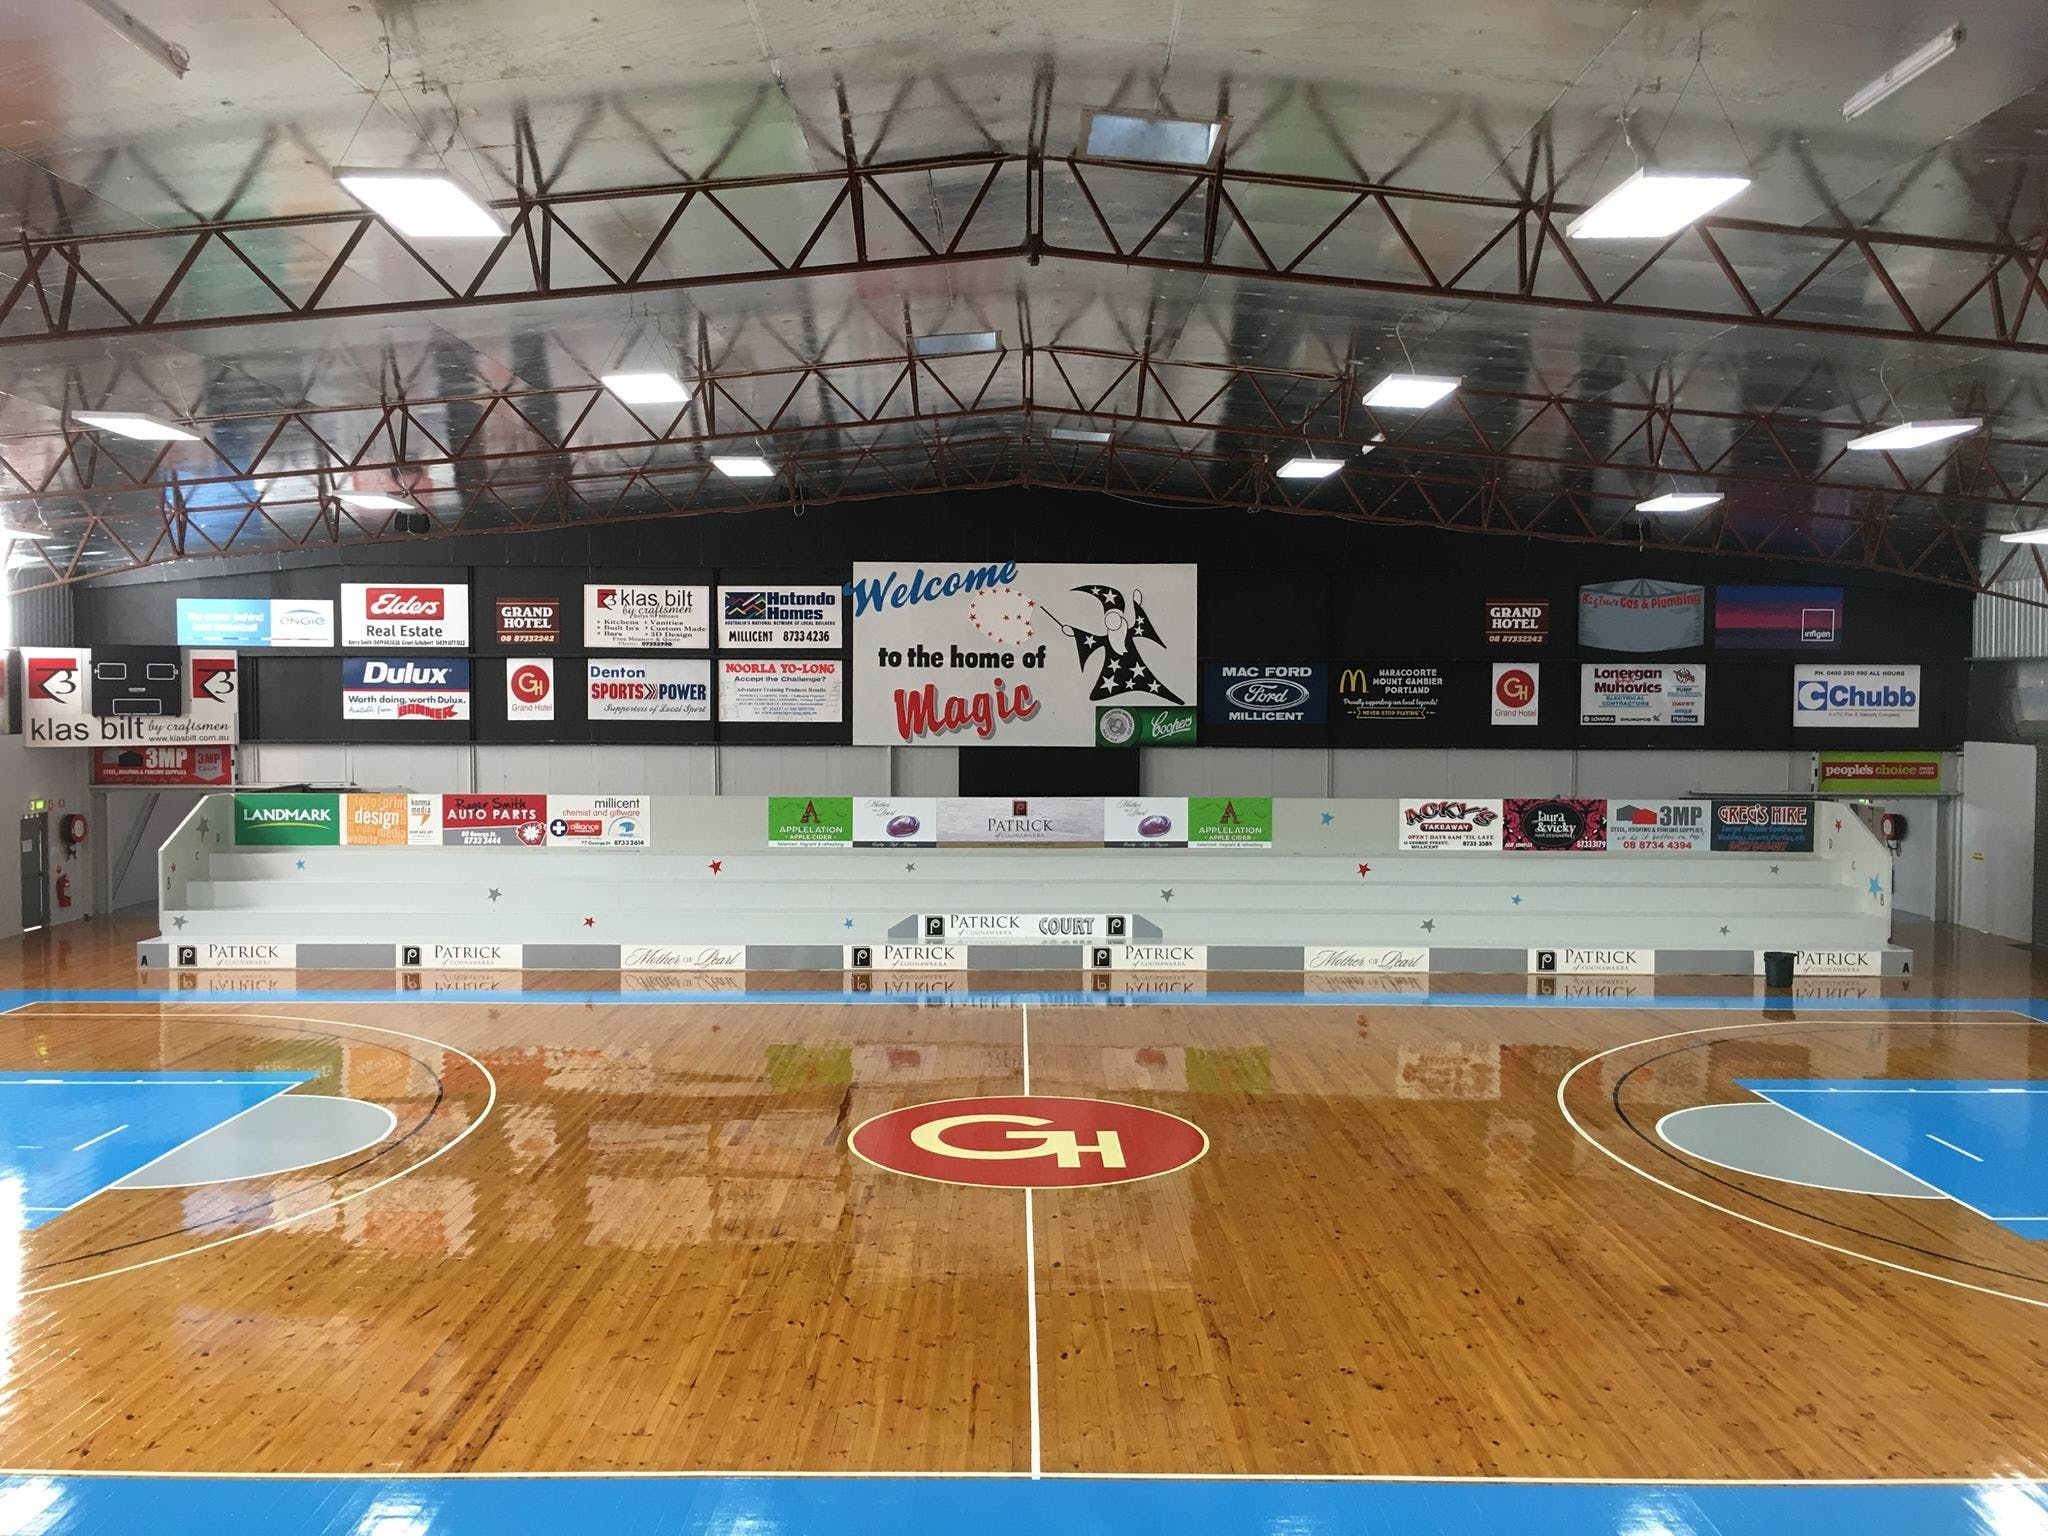 Millicent Basketball Junior Carnival Weekend - Accommodation in Bendigo